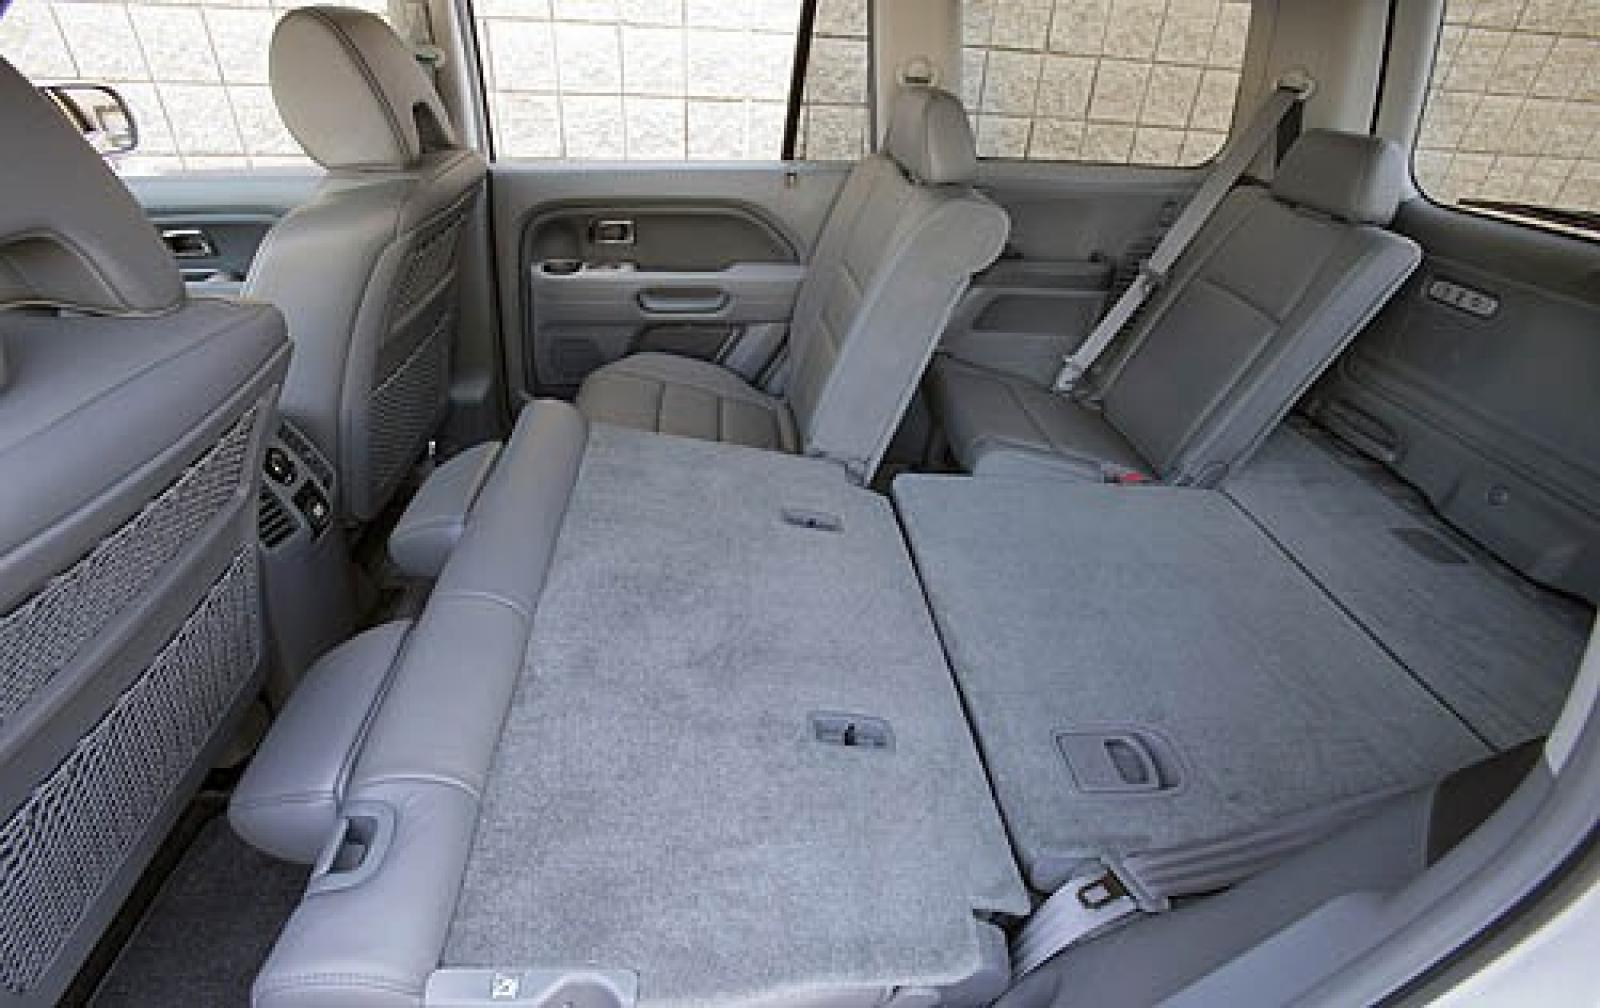 2008 honda pilot interior images. Black Bedroom Furniture Sets. Home Design Ideas